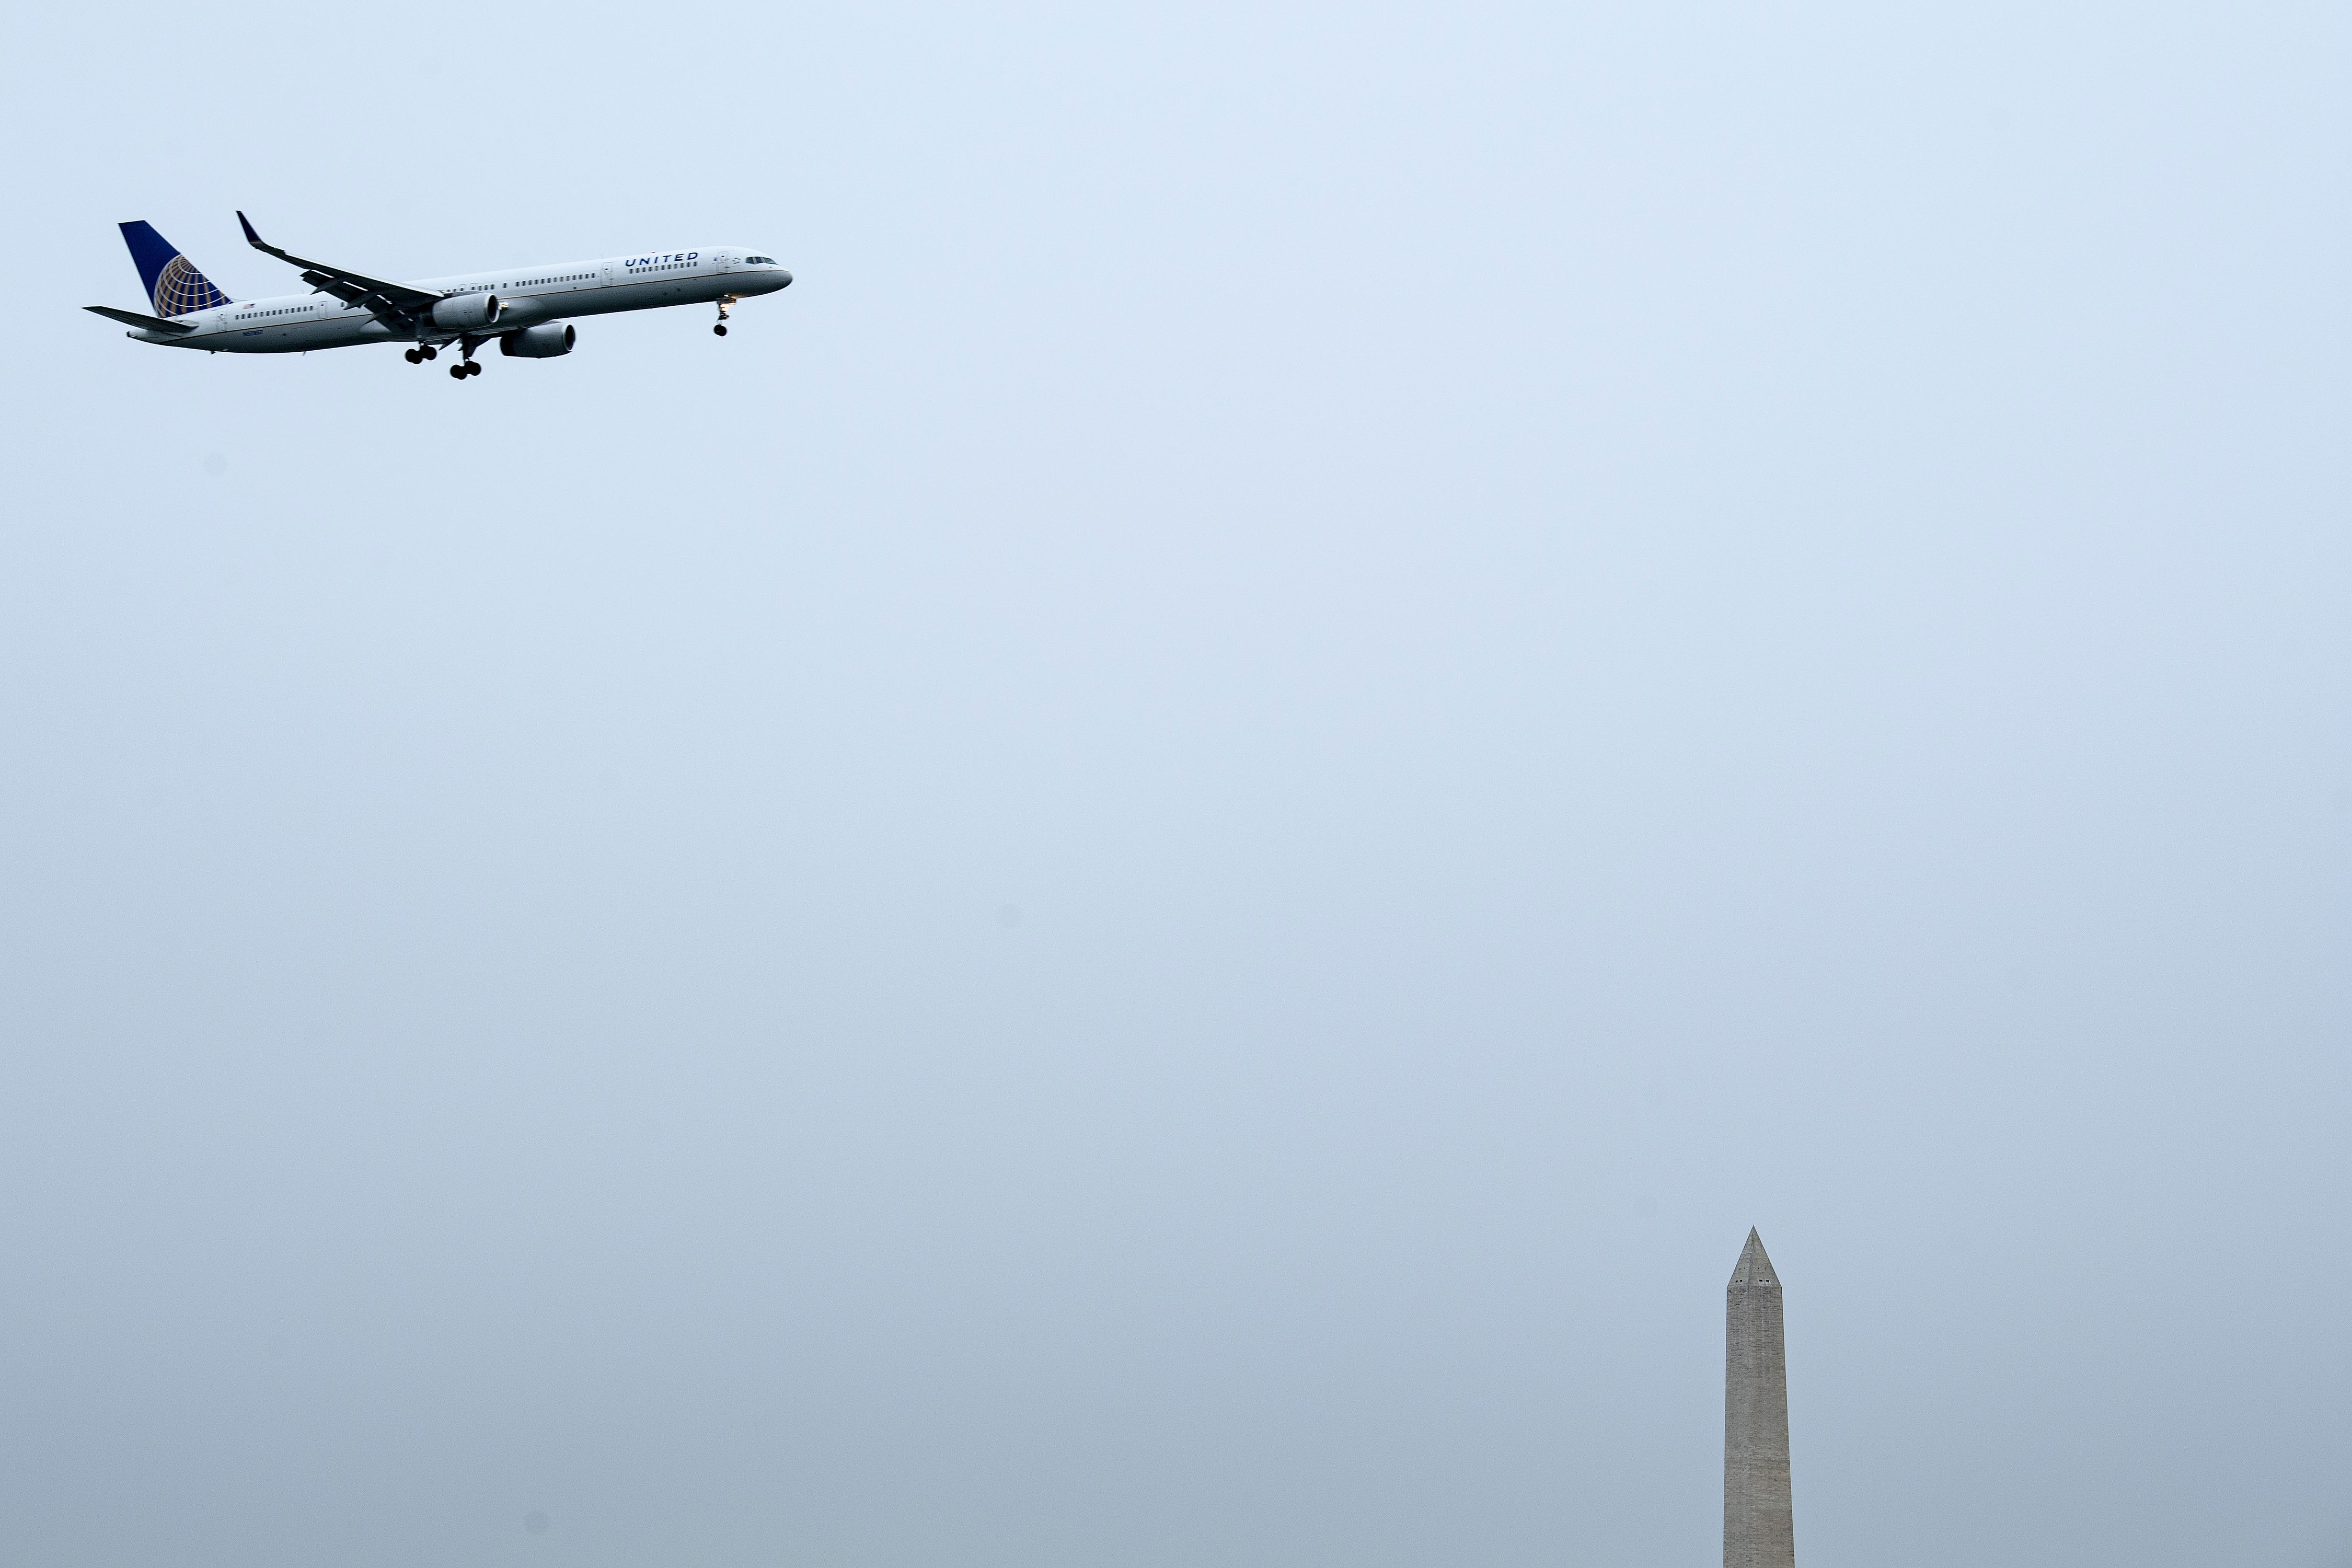 A United Airlines plane passes the Washington Monument.